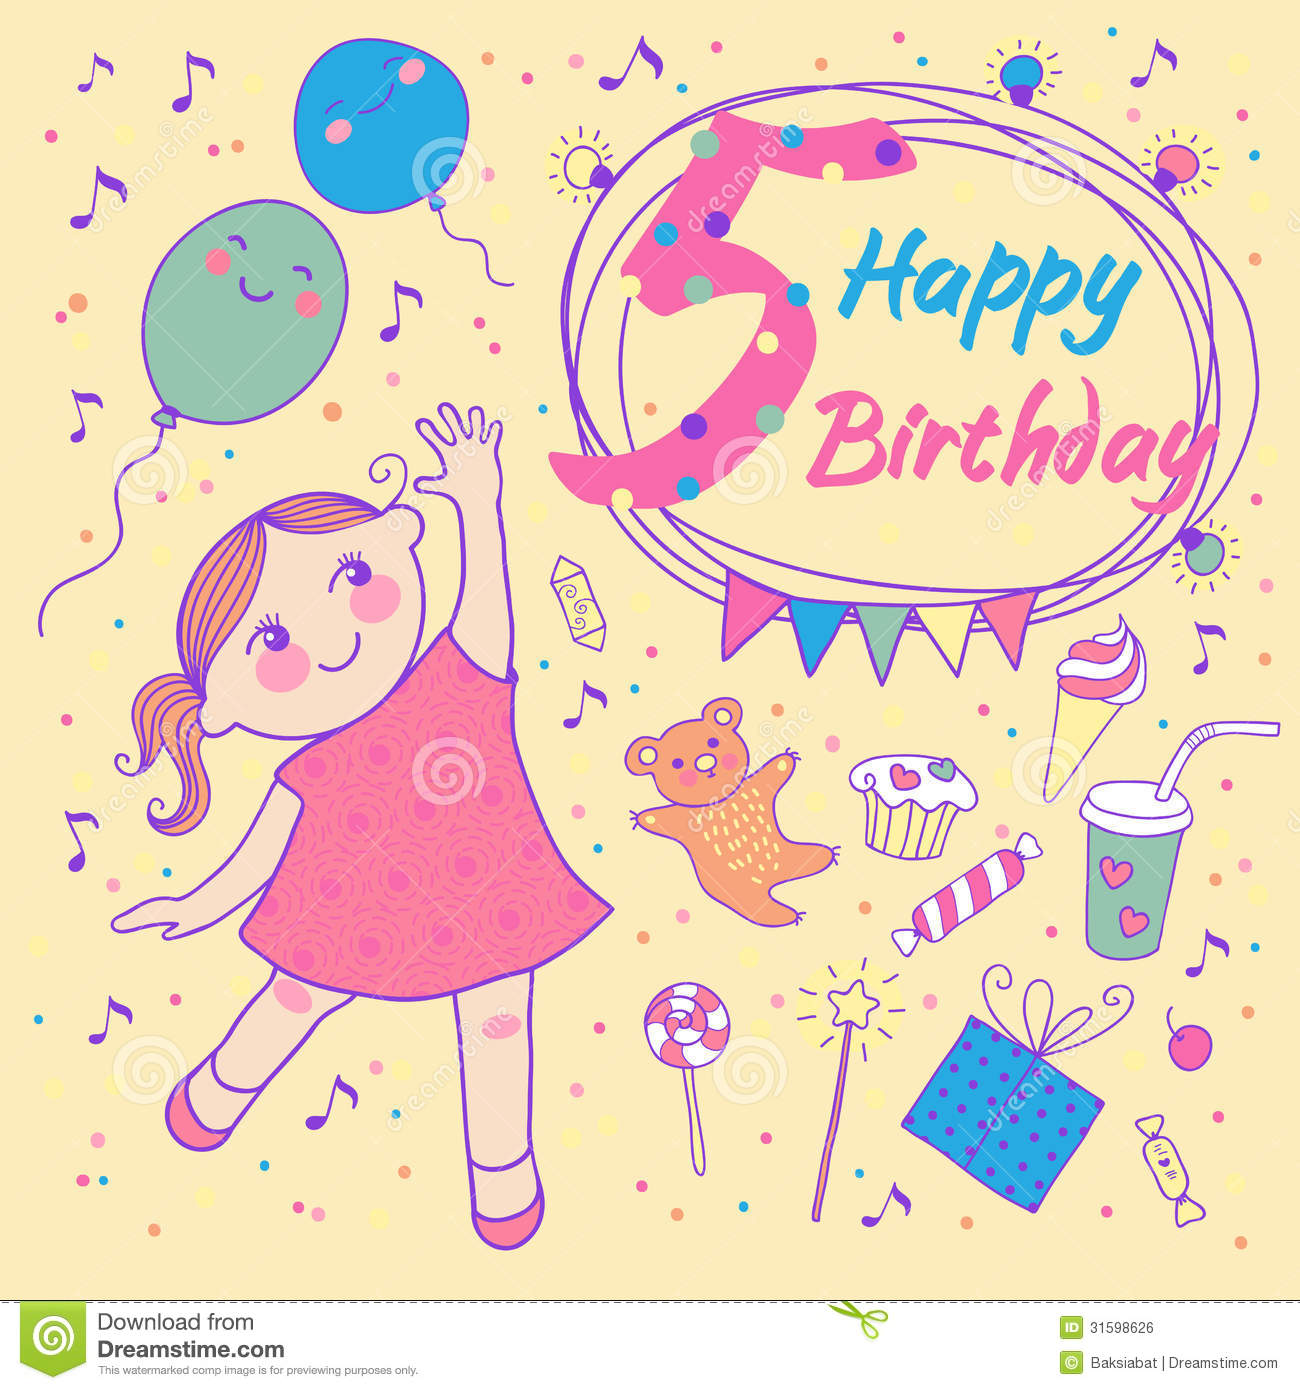 Birthday of the little girl 4 years greeting card stock vector birthday of the little girl 5 years greeting card royalty free stock image bookmarktalkfo Image collections